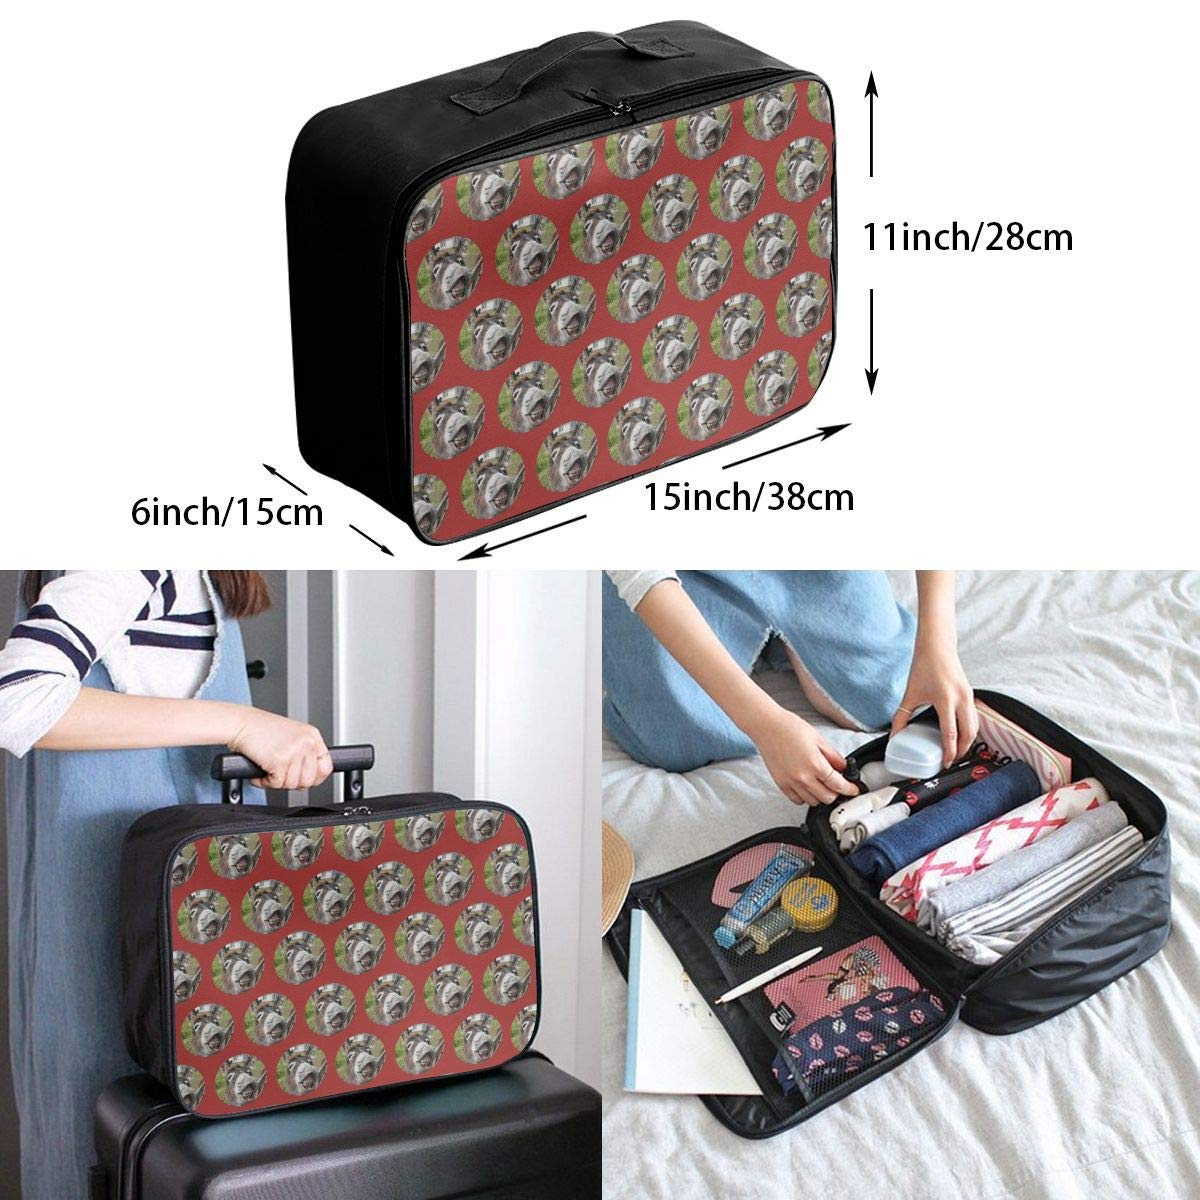 Funny Dogs Pug Puppie Donut Coffee Pattern Travel Duffel Bag Waterproof Fashion Lightweight Large Capacity Portable Luggage Bag